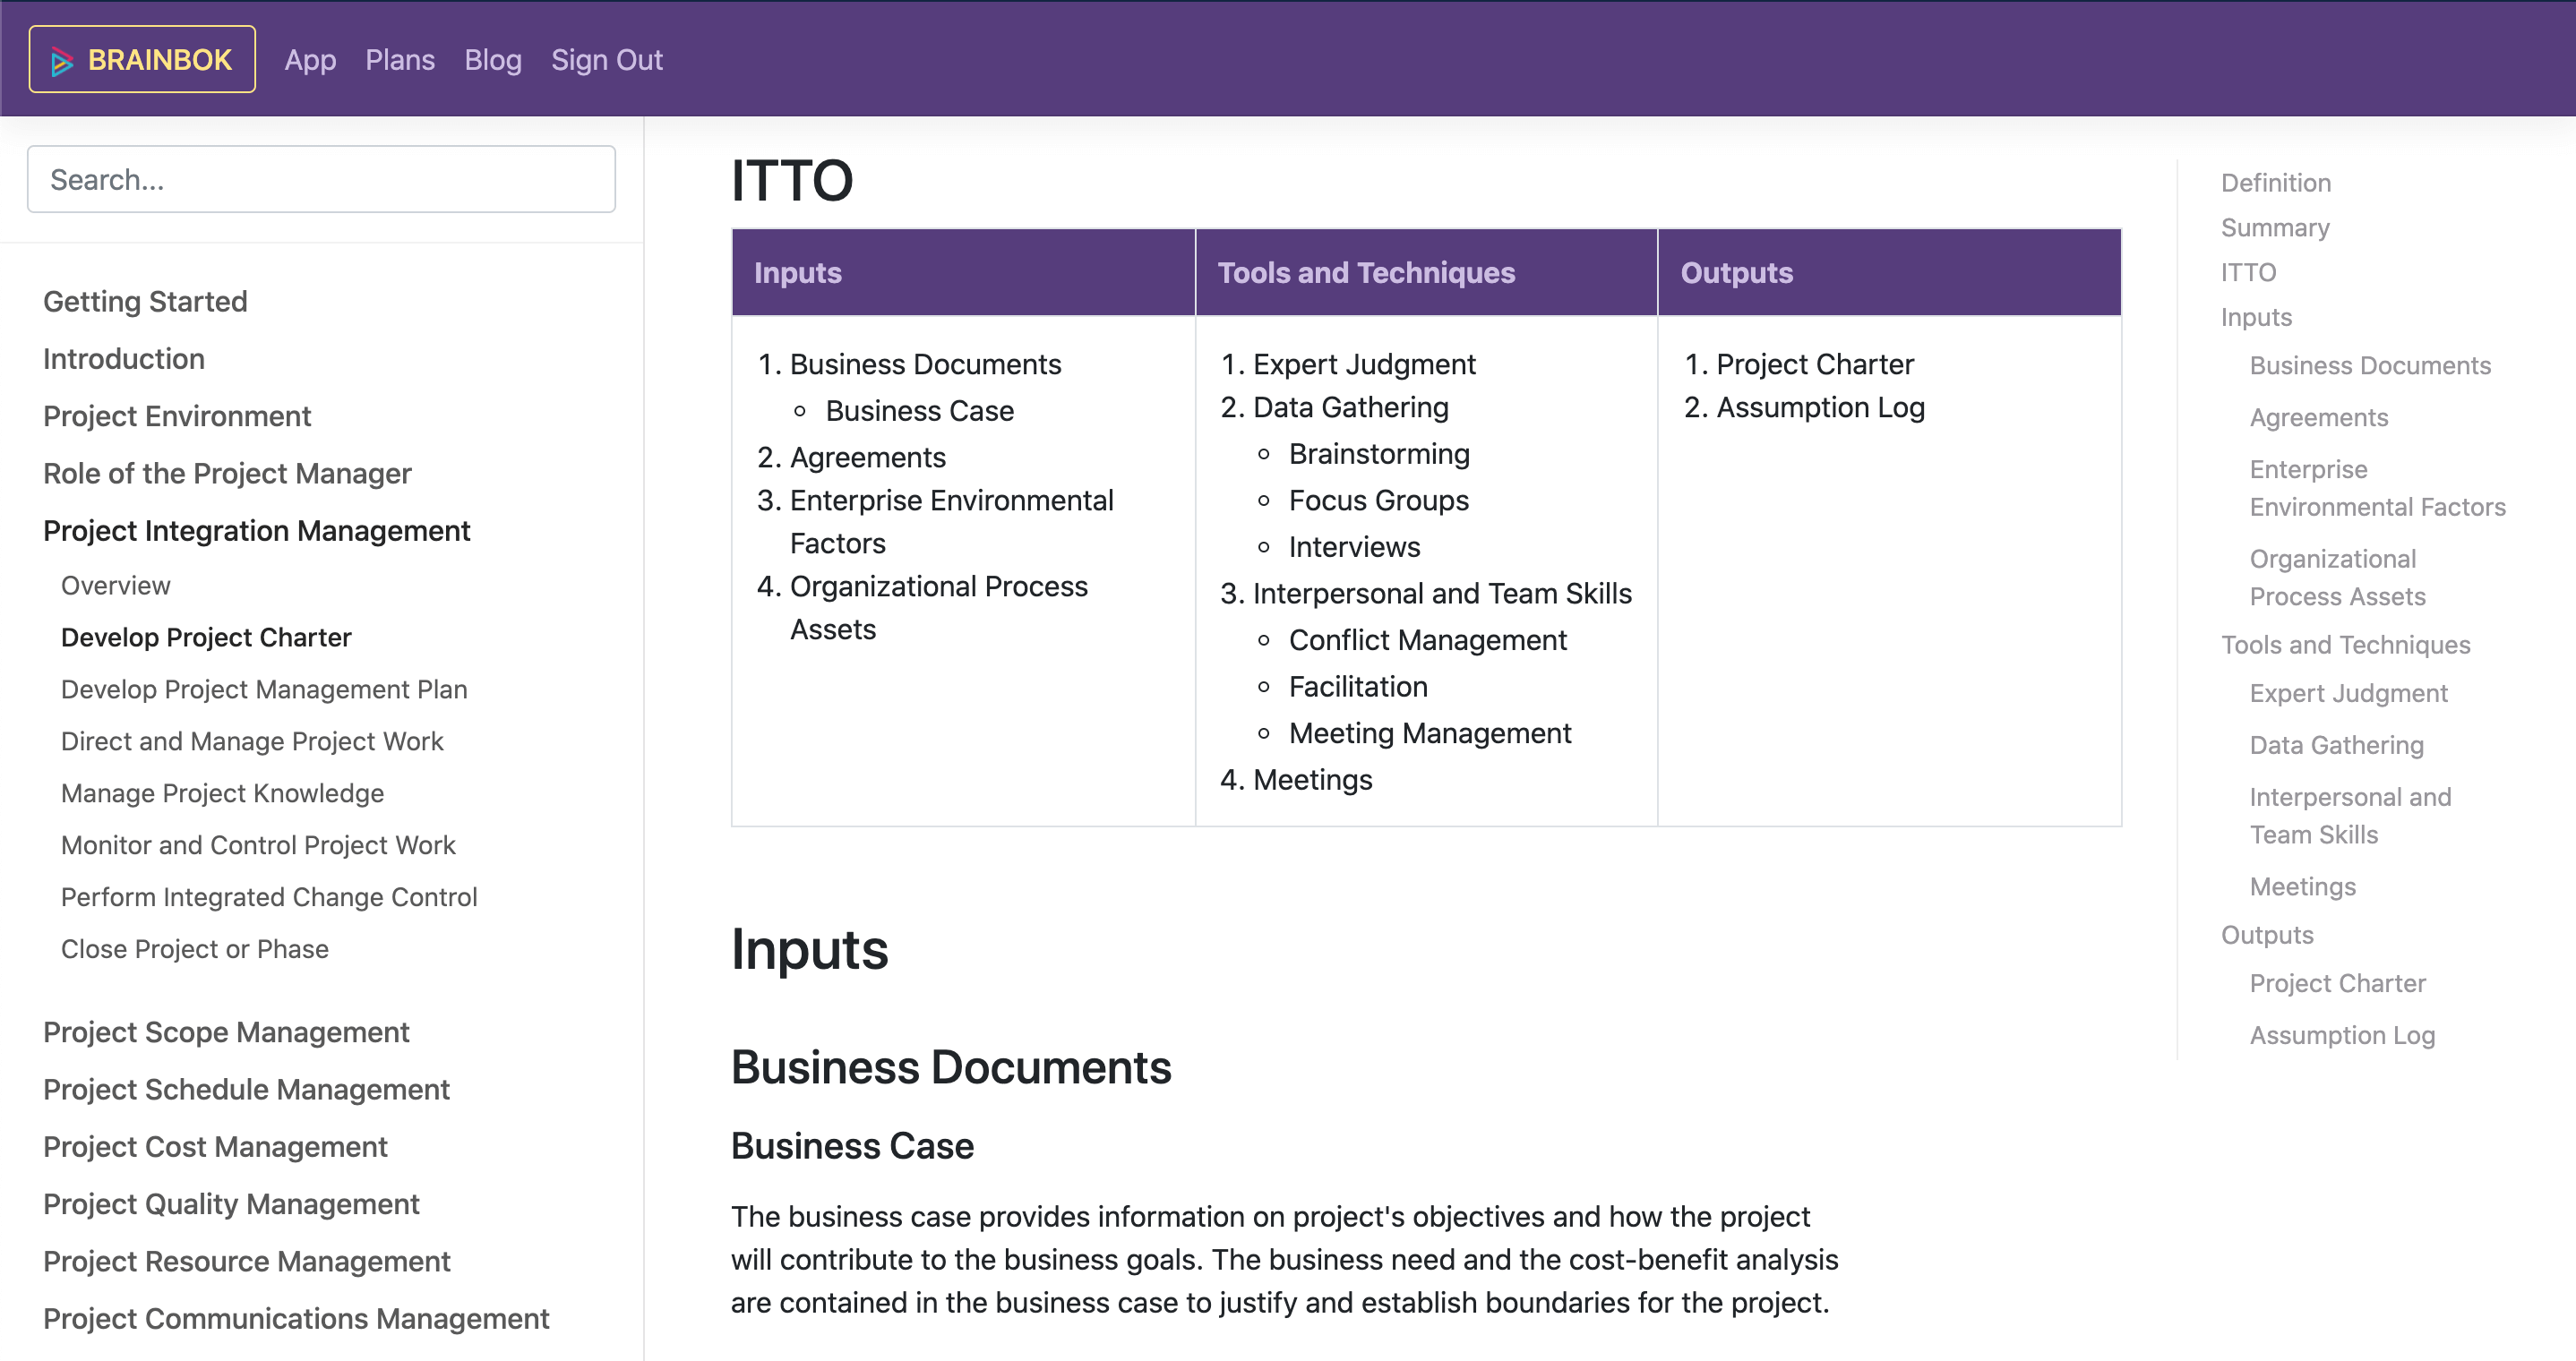 PMP Study Guide with PMP ITTO Charts